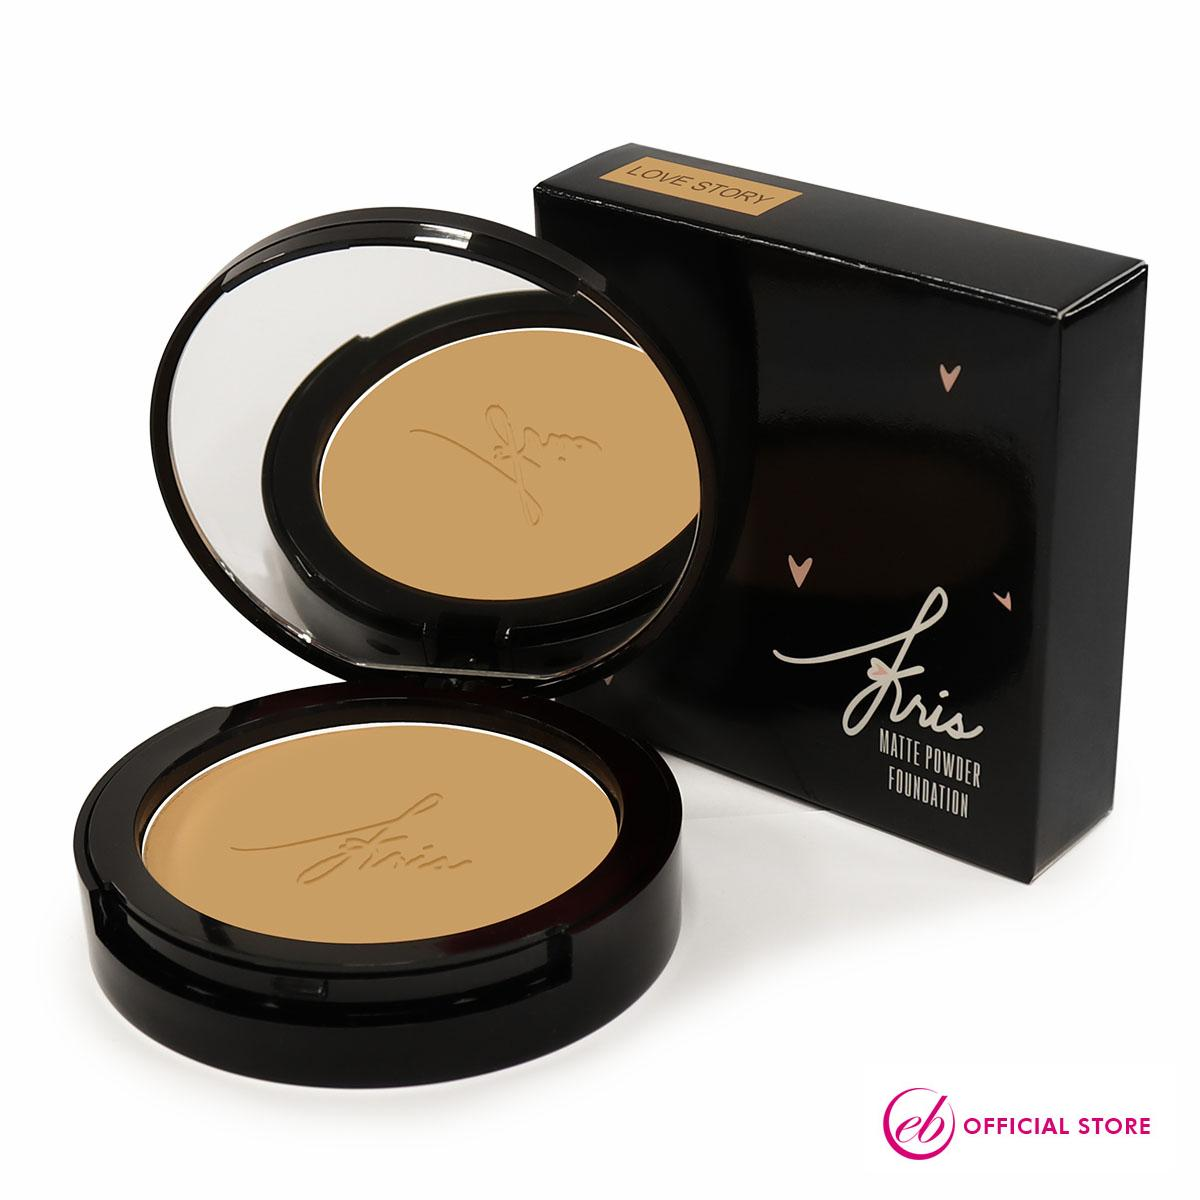 Kris Matte Powder Foundation Philippines